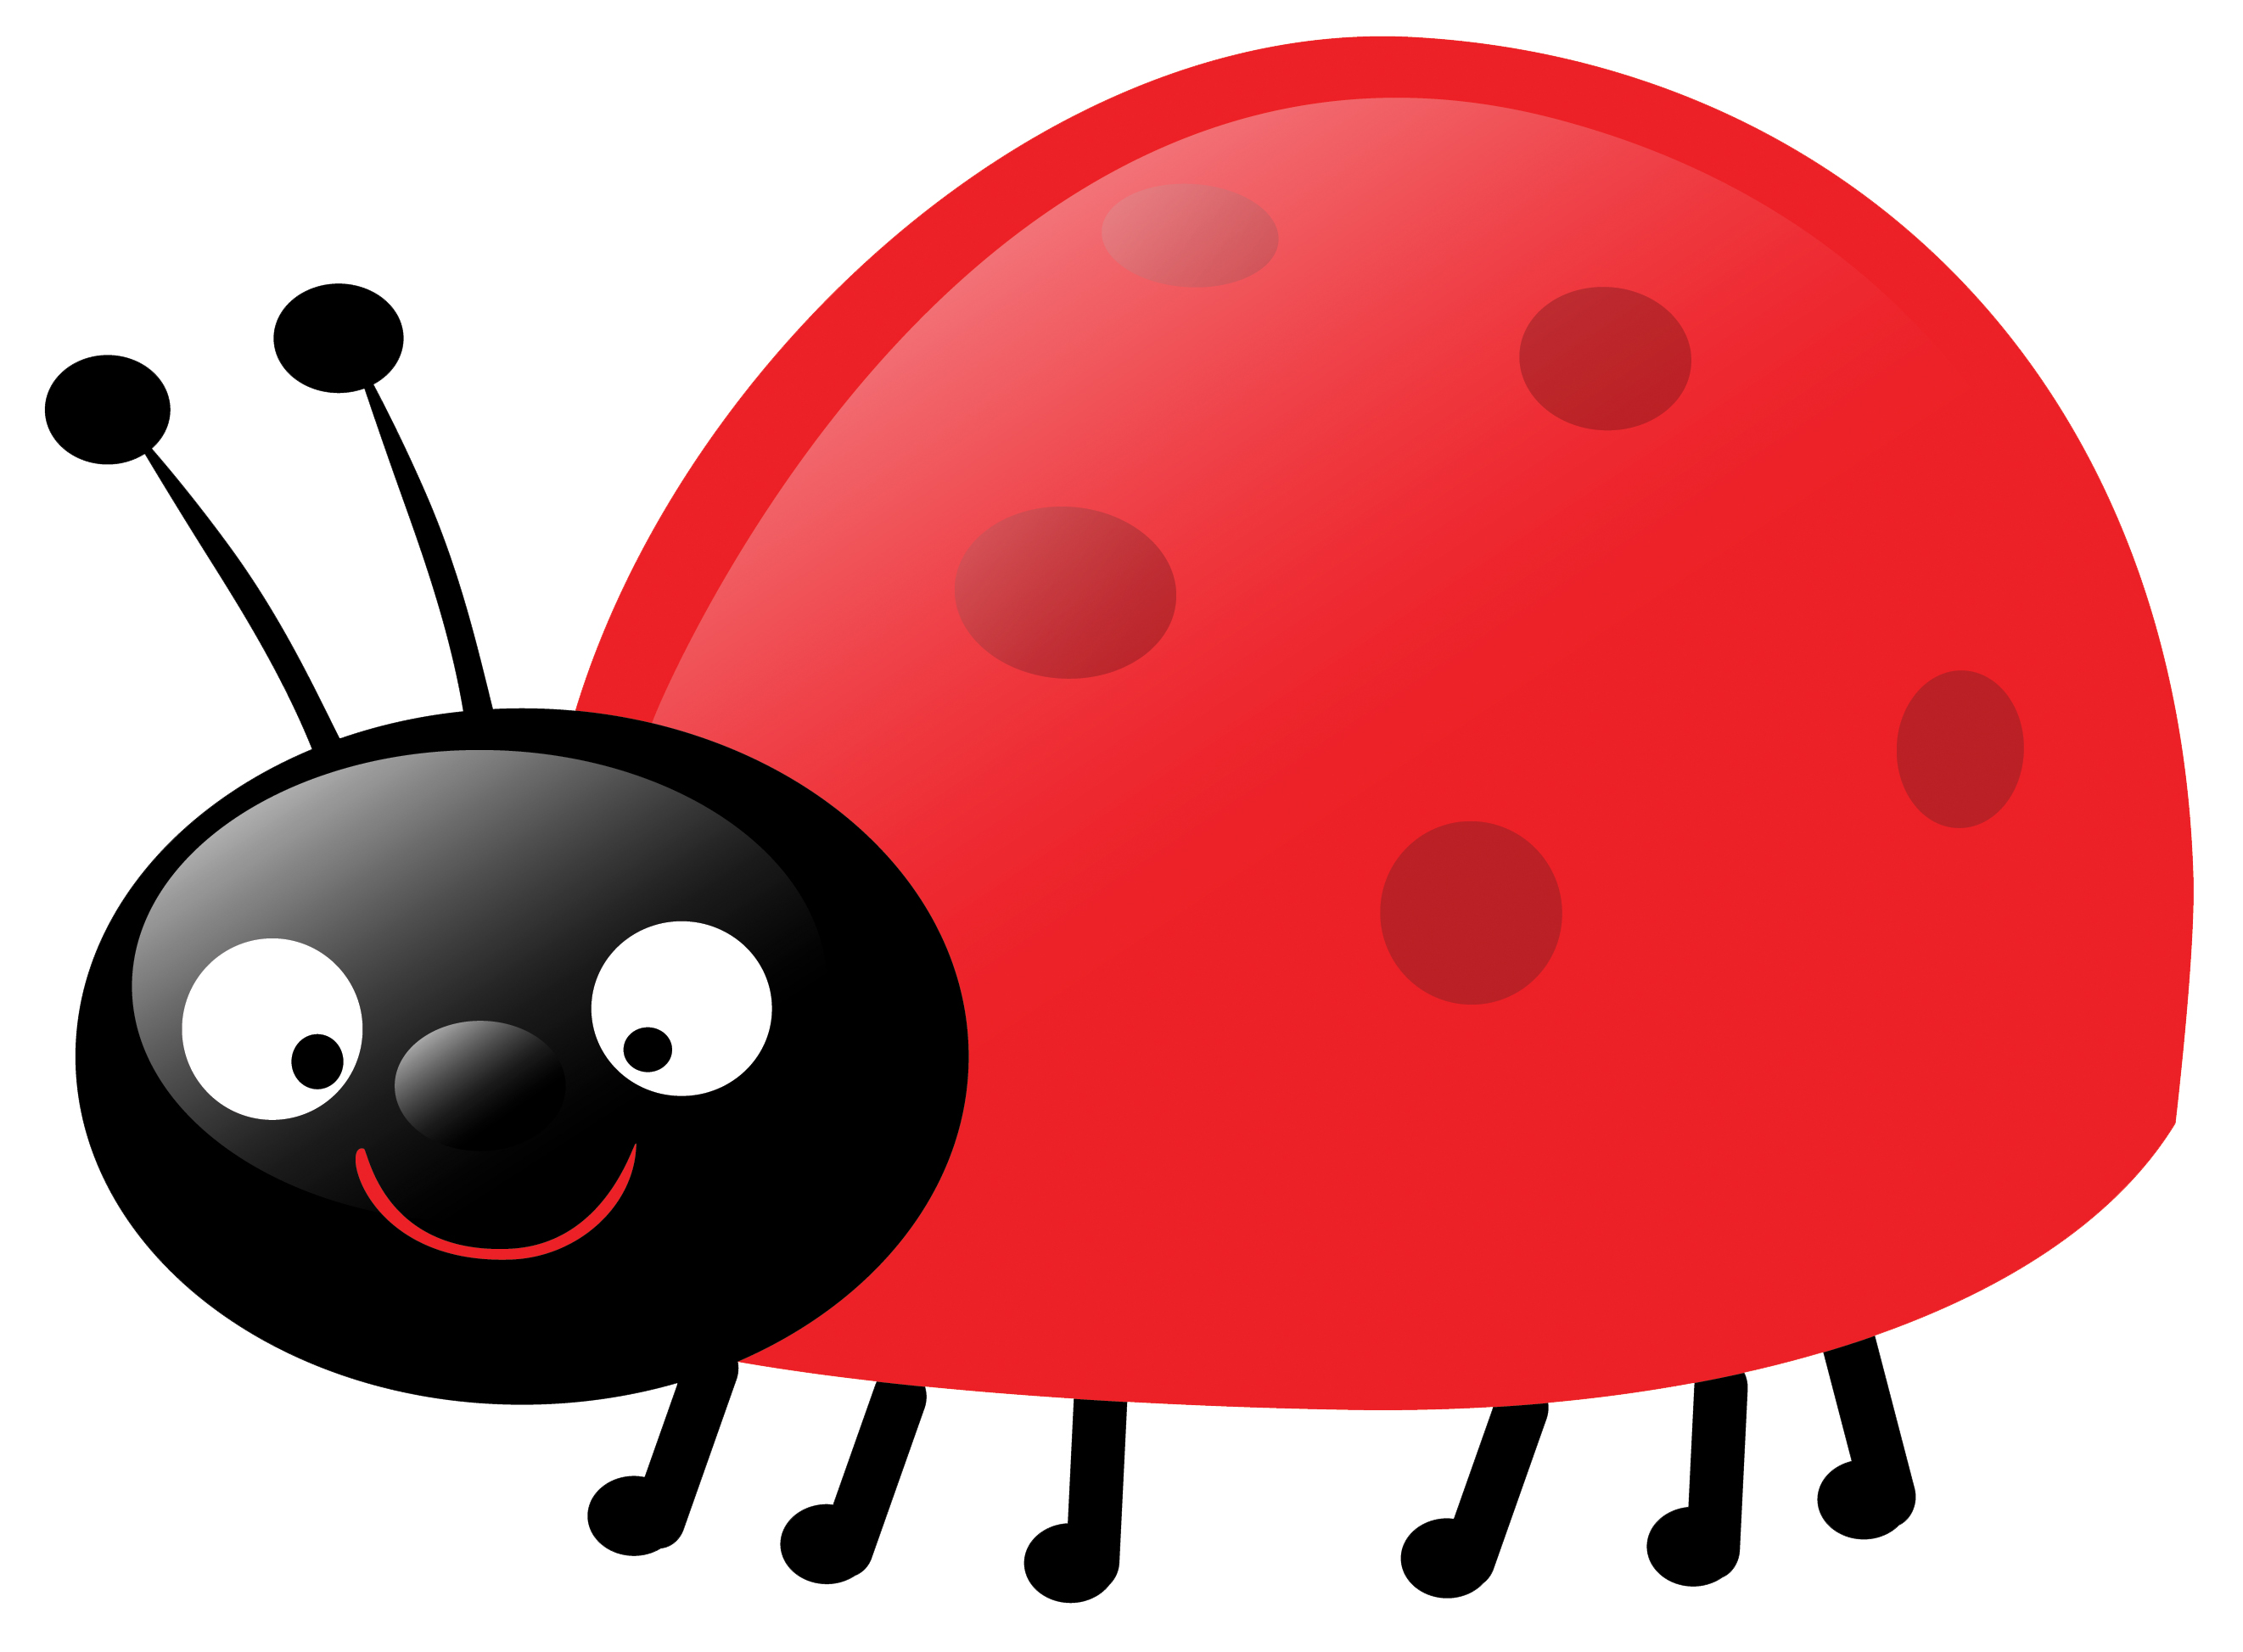 2643x1947 White Flower Clipart Cute Ladybug